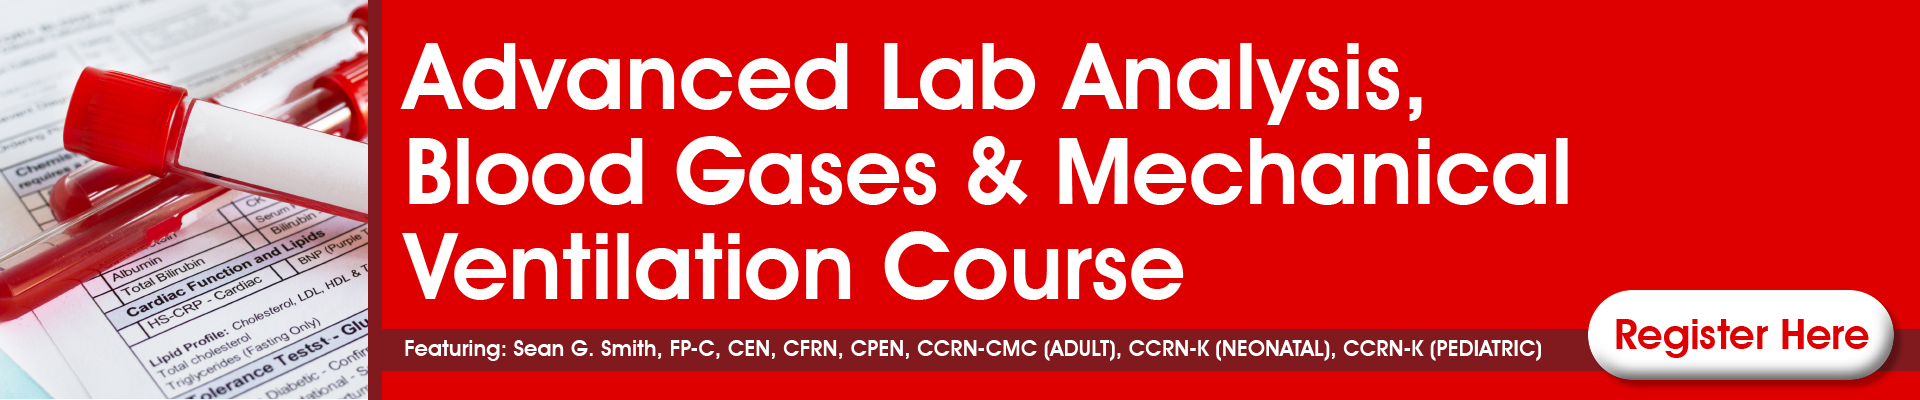 Clinical Interpretation Course: Strategies for Advanced Lab Analysis, Blood Gases & Mechanical Ventilation